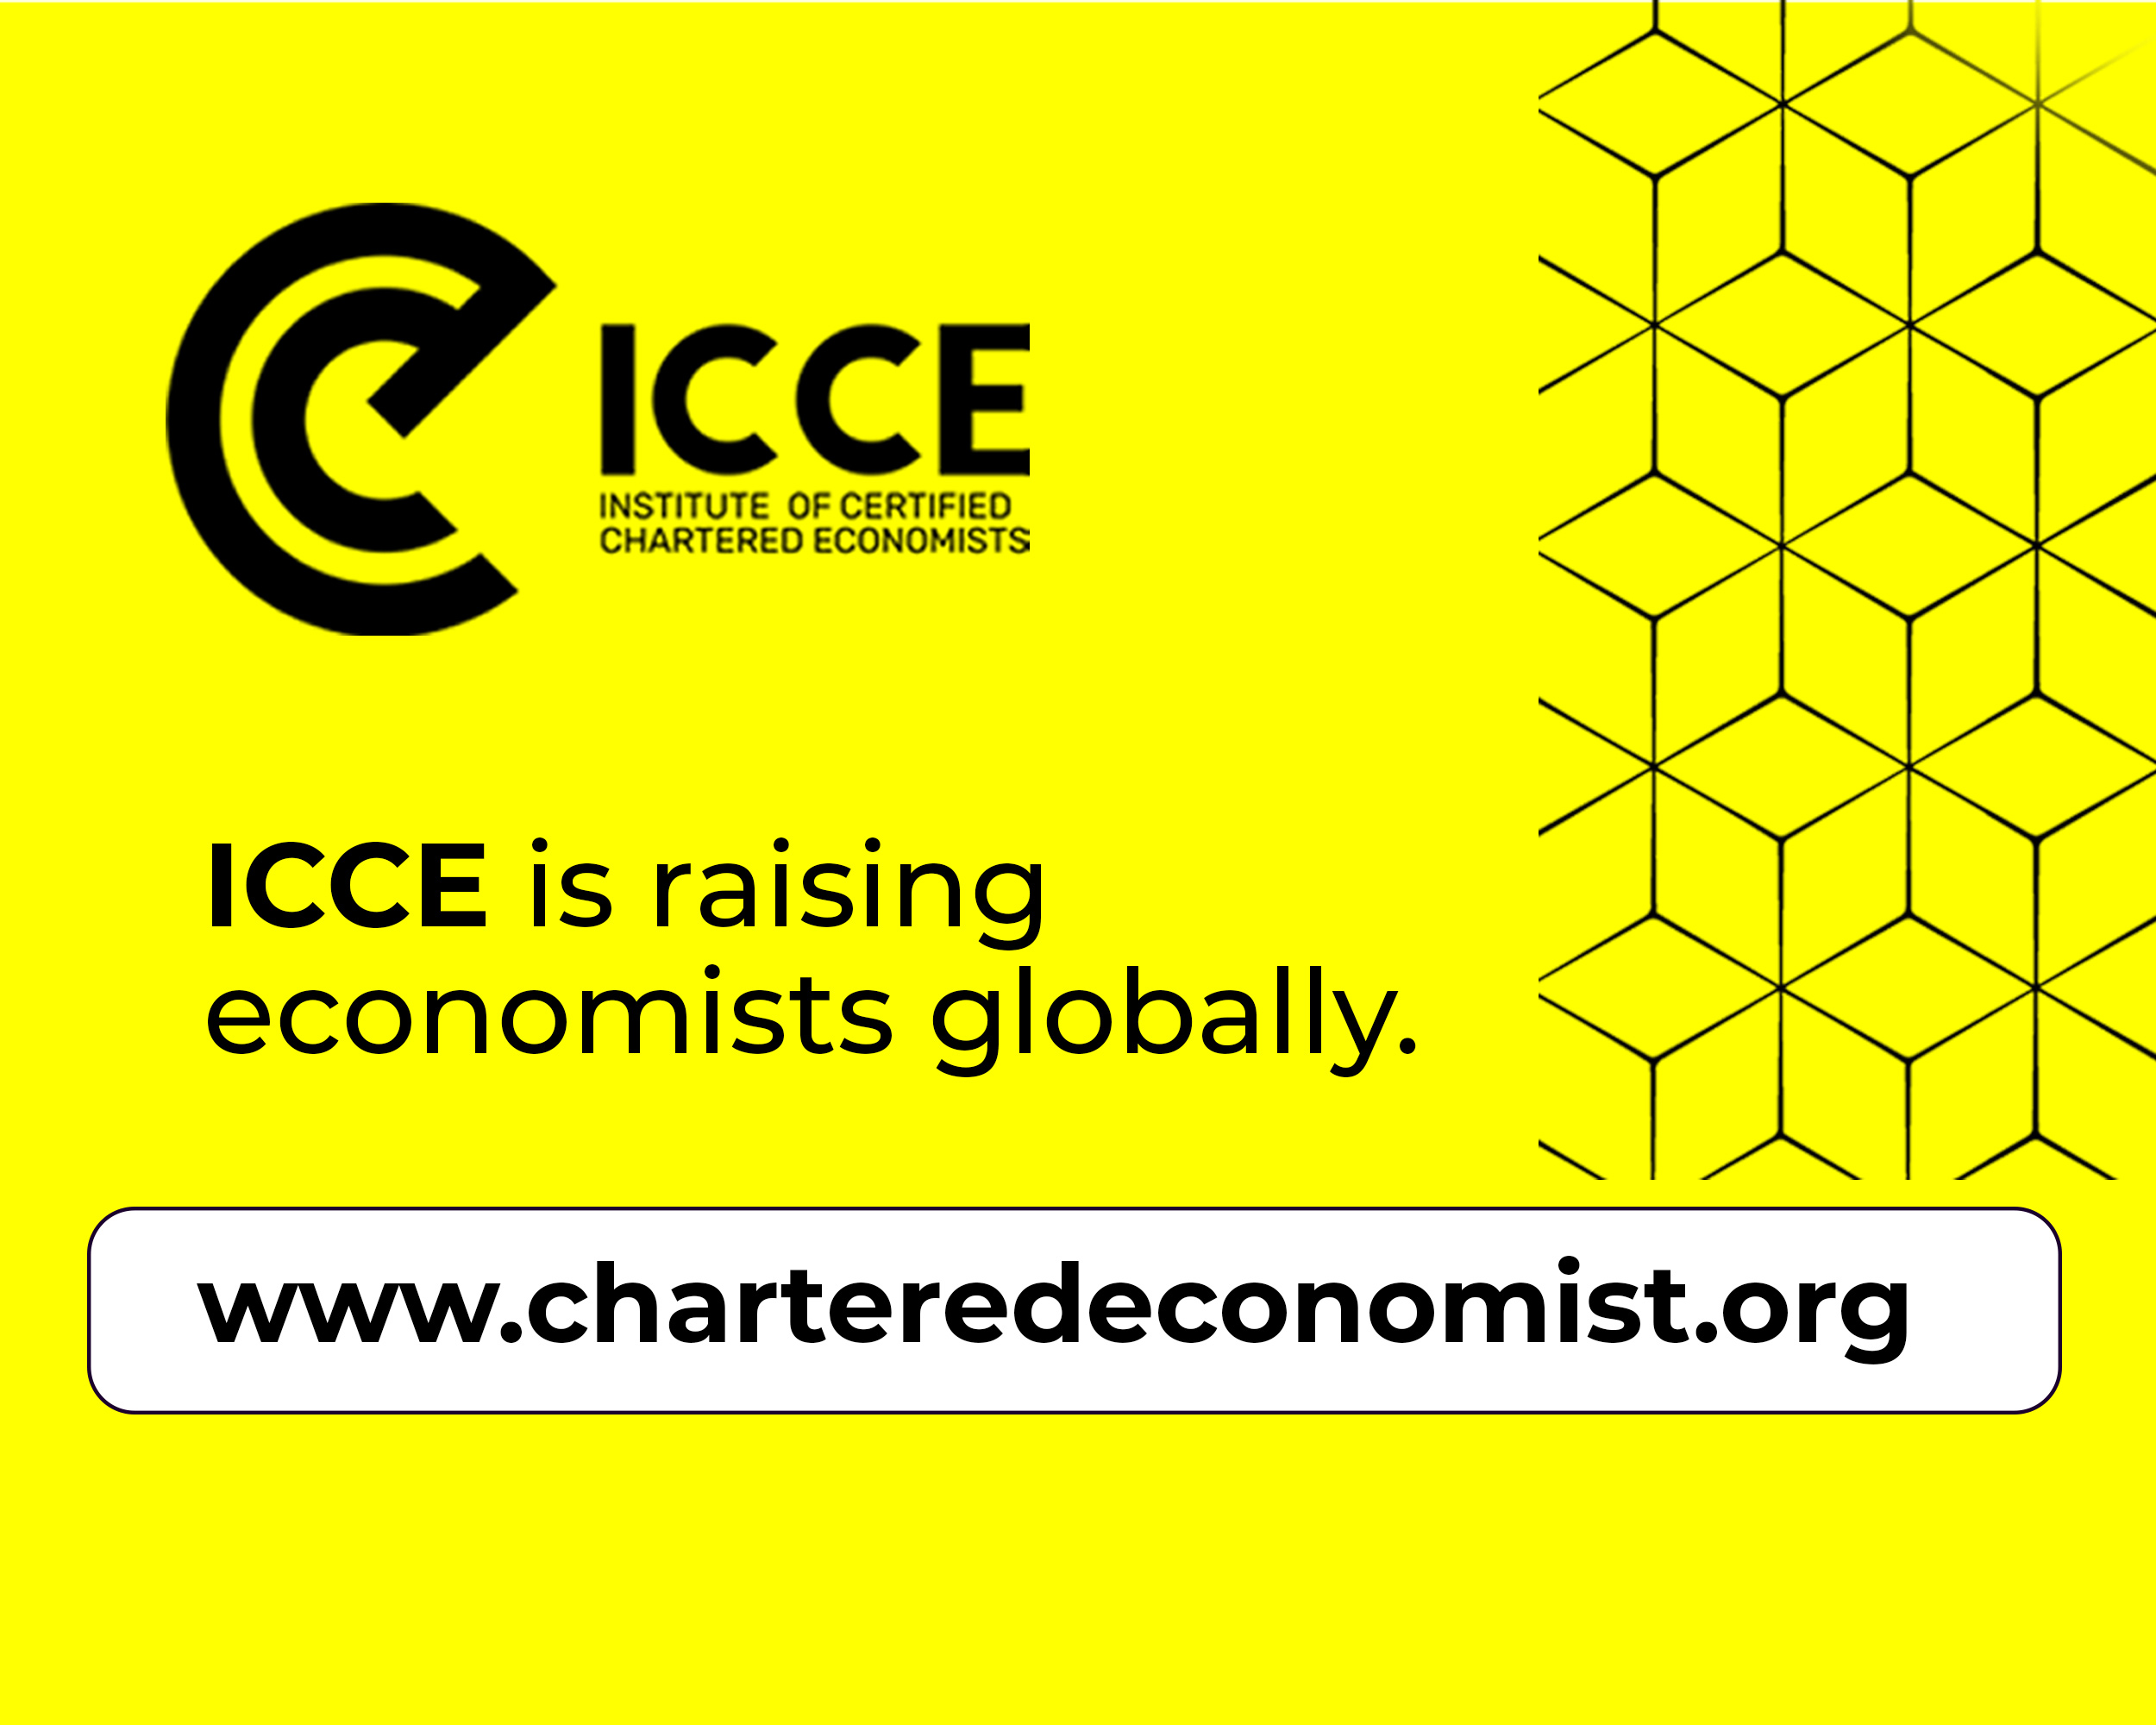 ICCE becomes the leading provider of Chartered Economist designation globally.